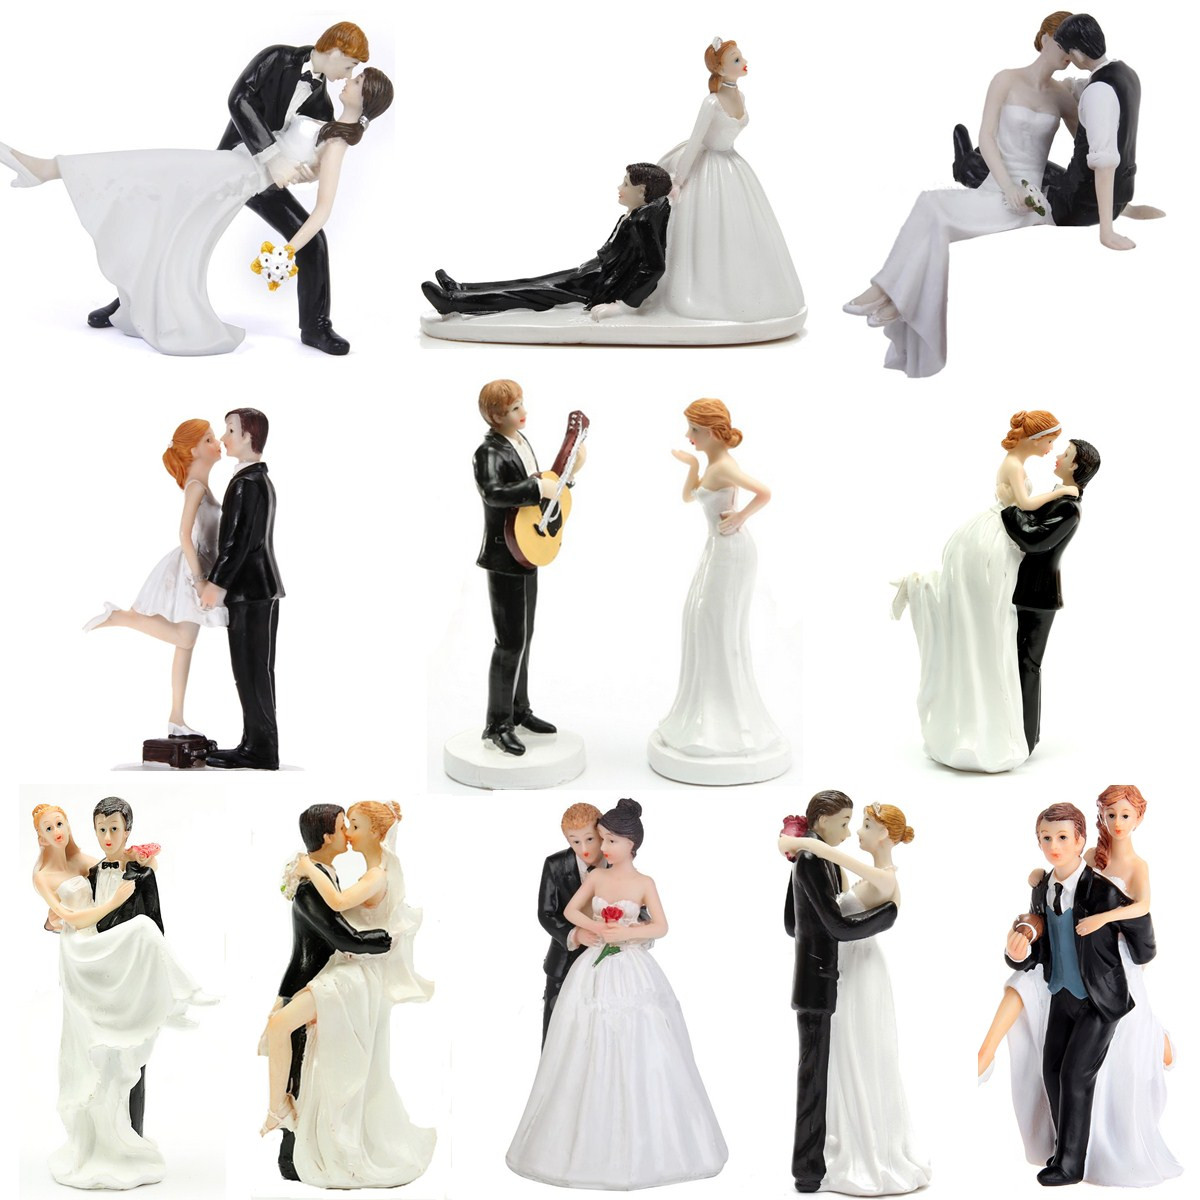 ROMANTIC FUNNY WEDDING CAKE TOPPER FIGURE BRIDE GROOM COUPLE